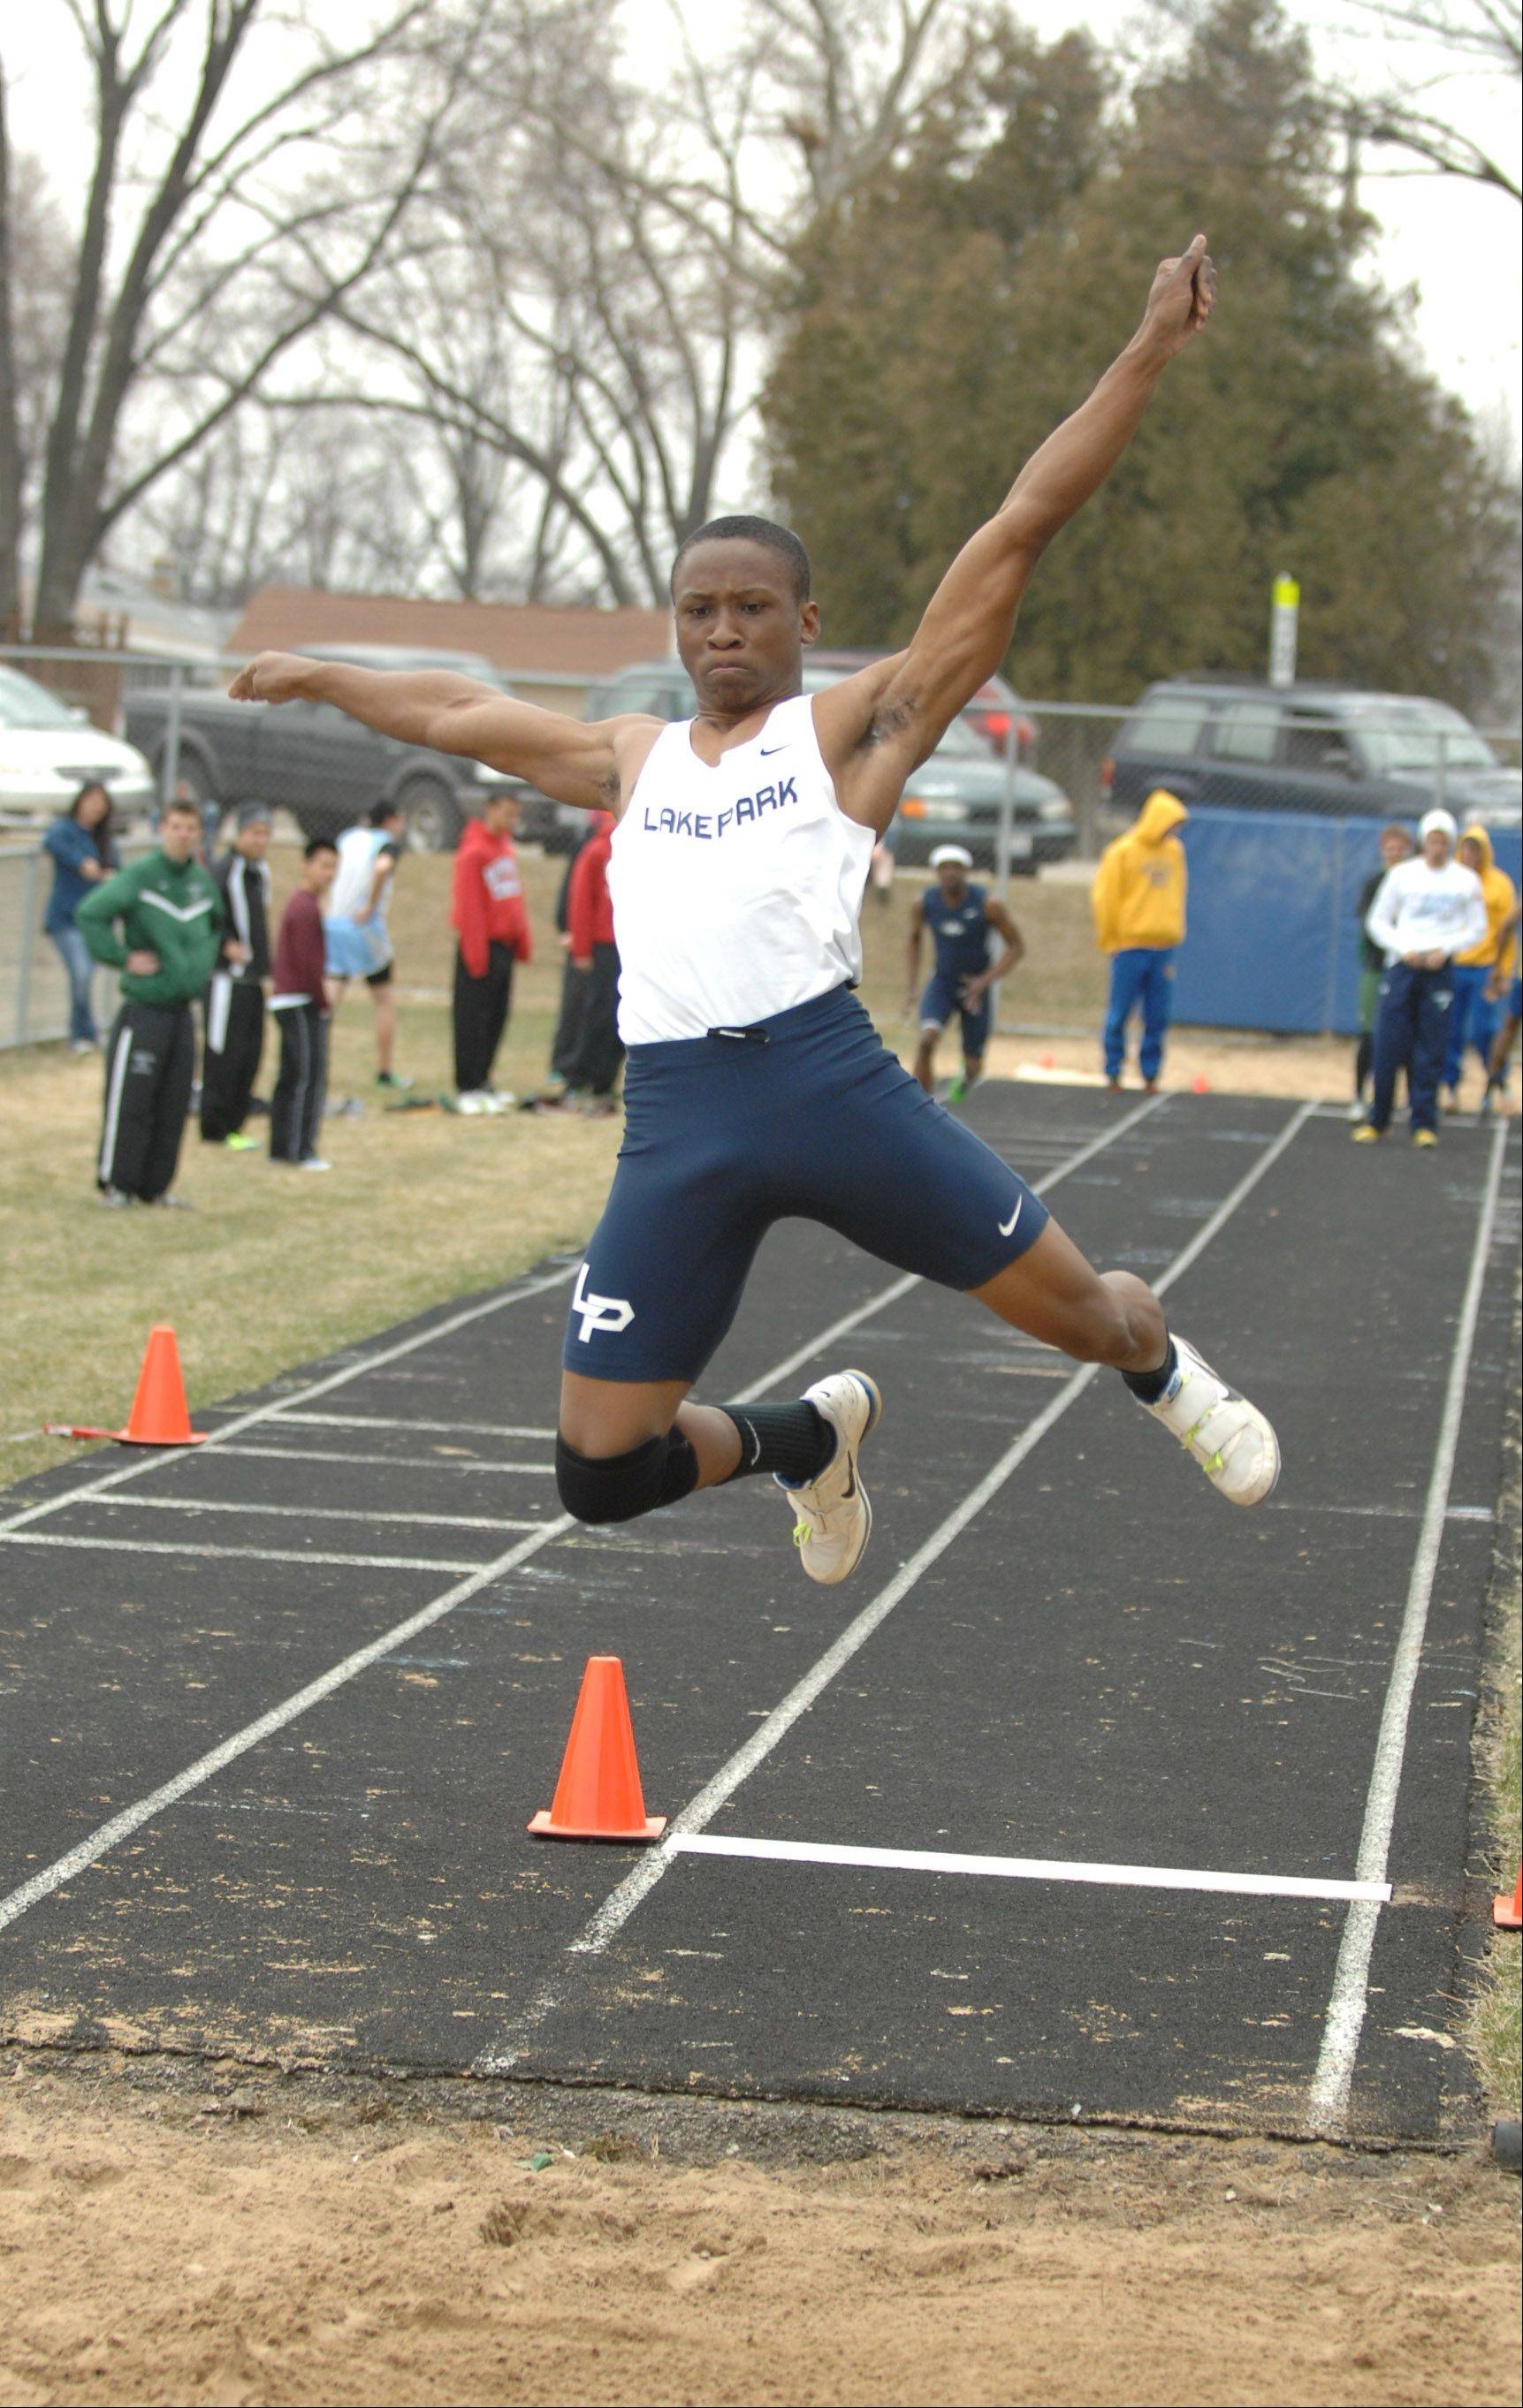 Marcus Jegede of Lake Park takes part in the long jump during the Wheaton North Best 4 boys track invitational Saturday.